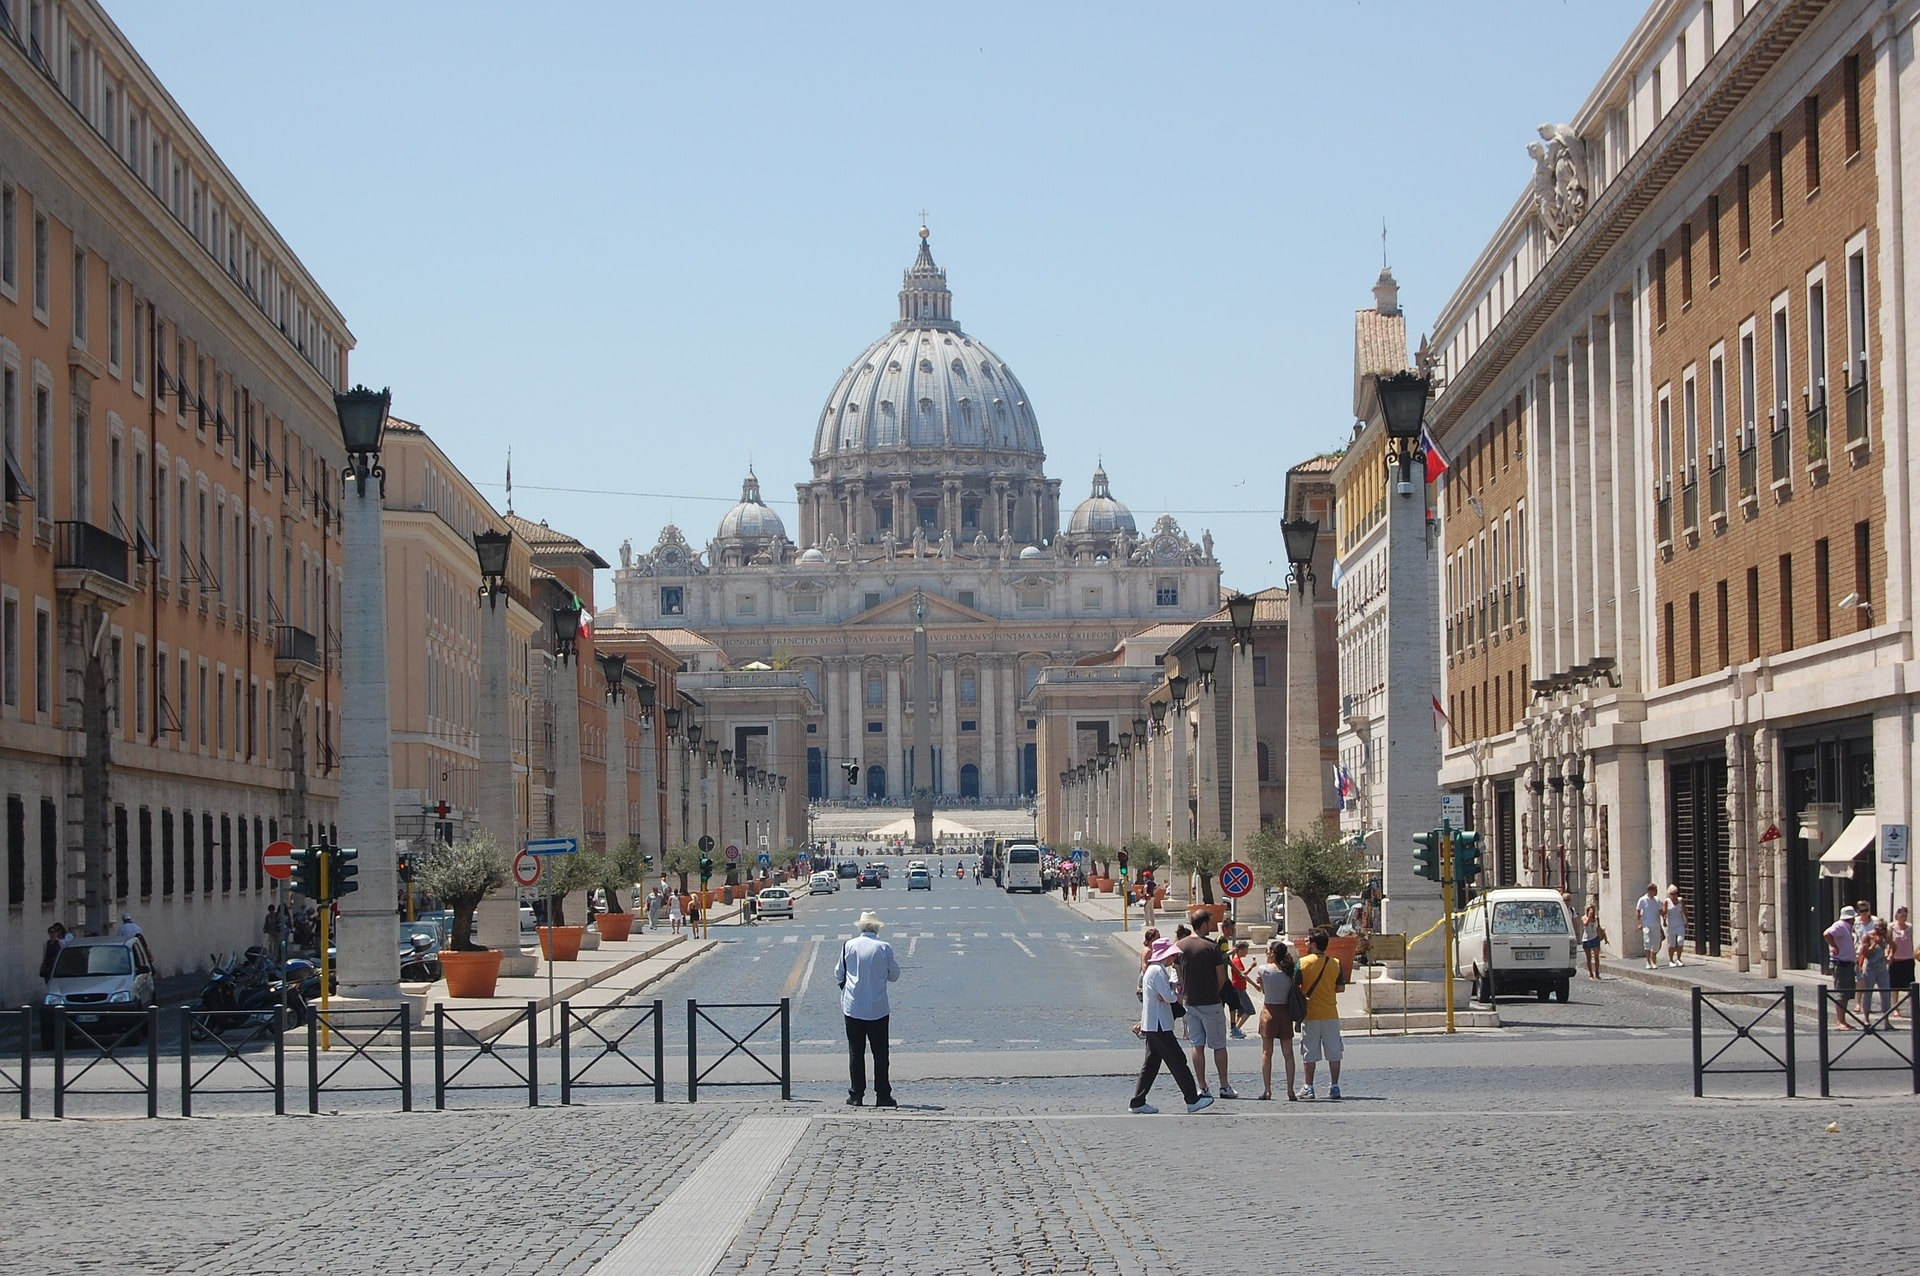 Packed with amazing sites, visiting Vatican City is an awesome thing to do in Italy